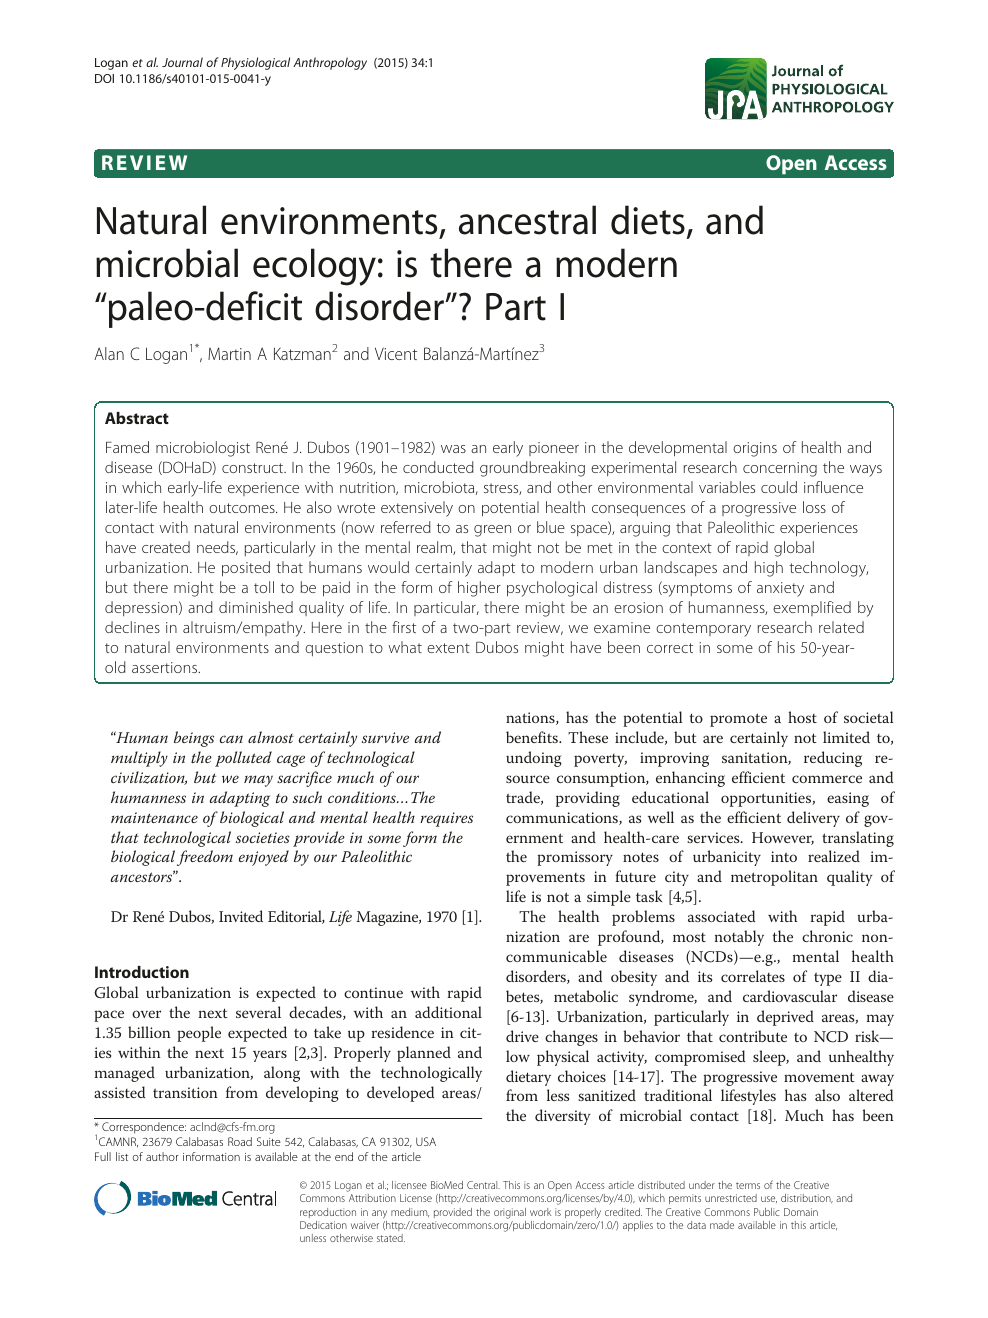 Natural environments, ancestral diets, and microbial ecology